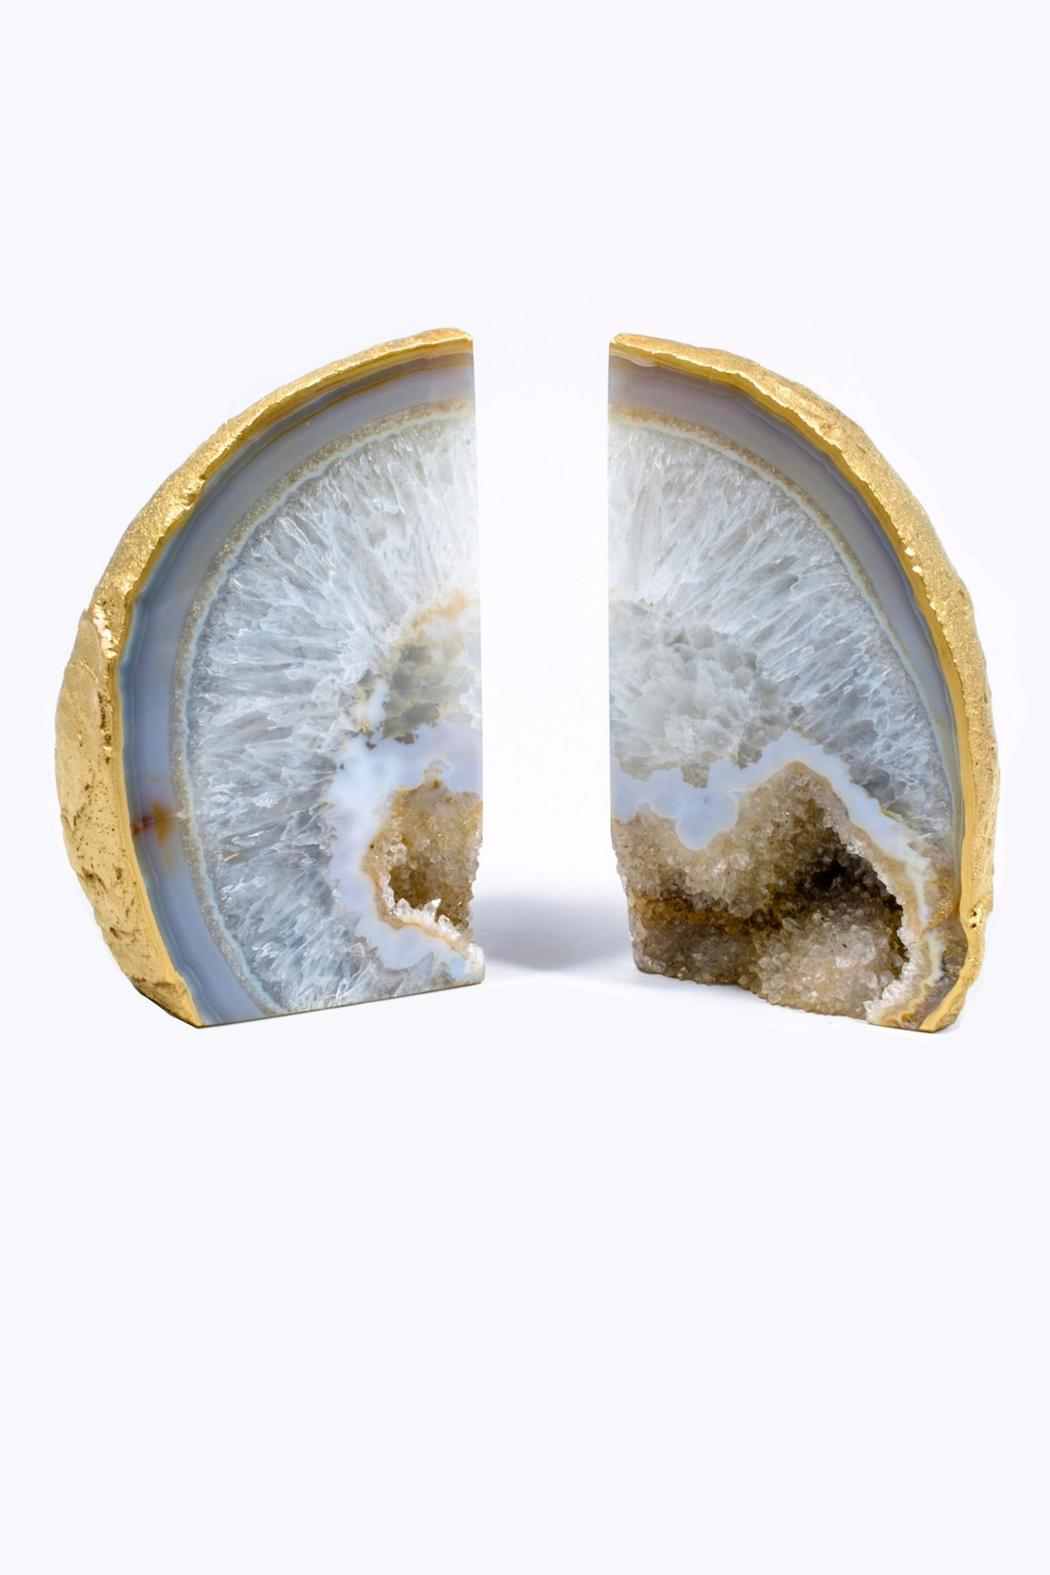 Amazing Geode Bookends Stone | Best Geode Bookends